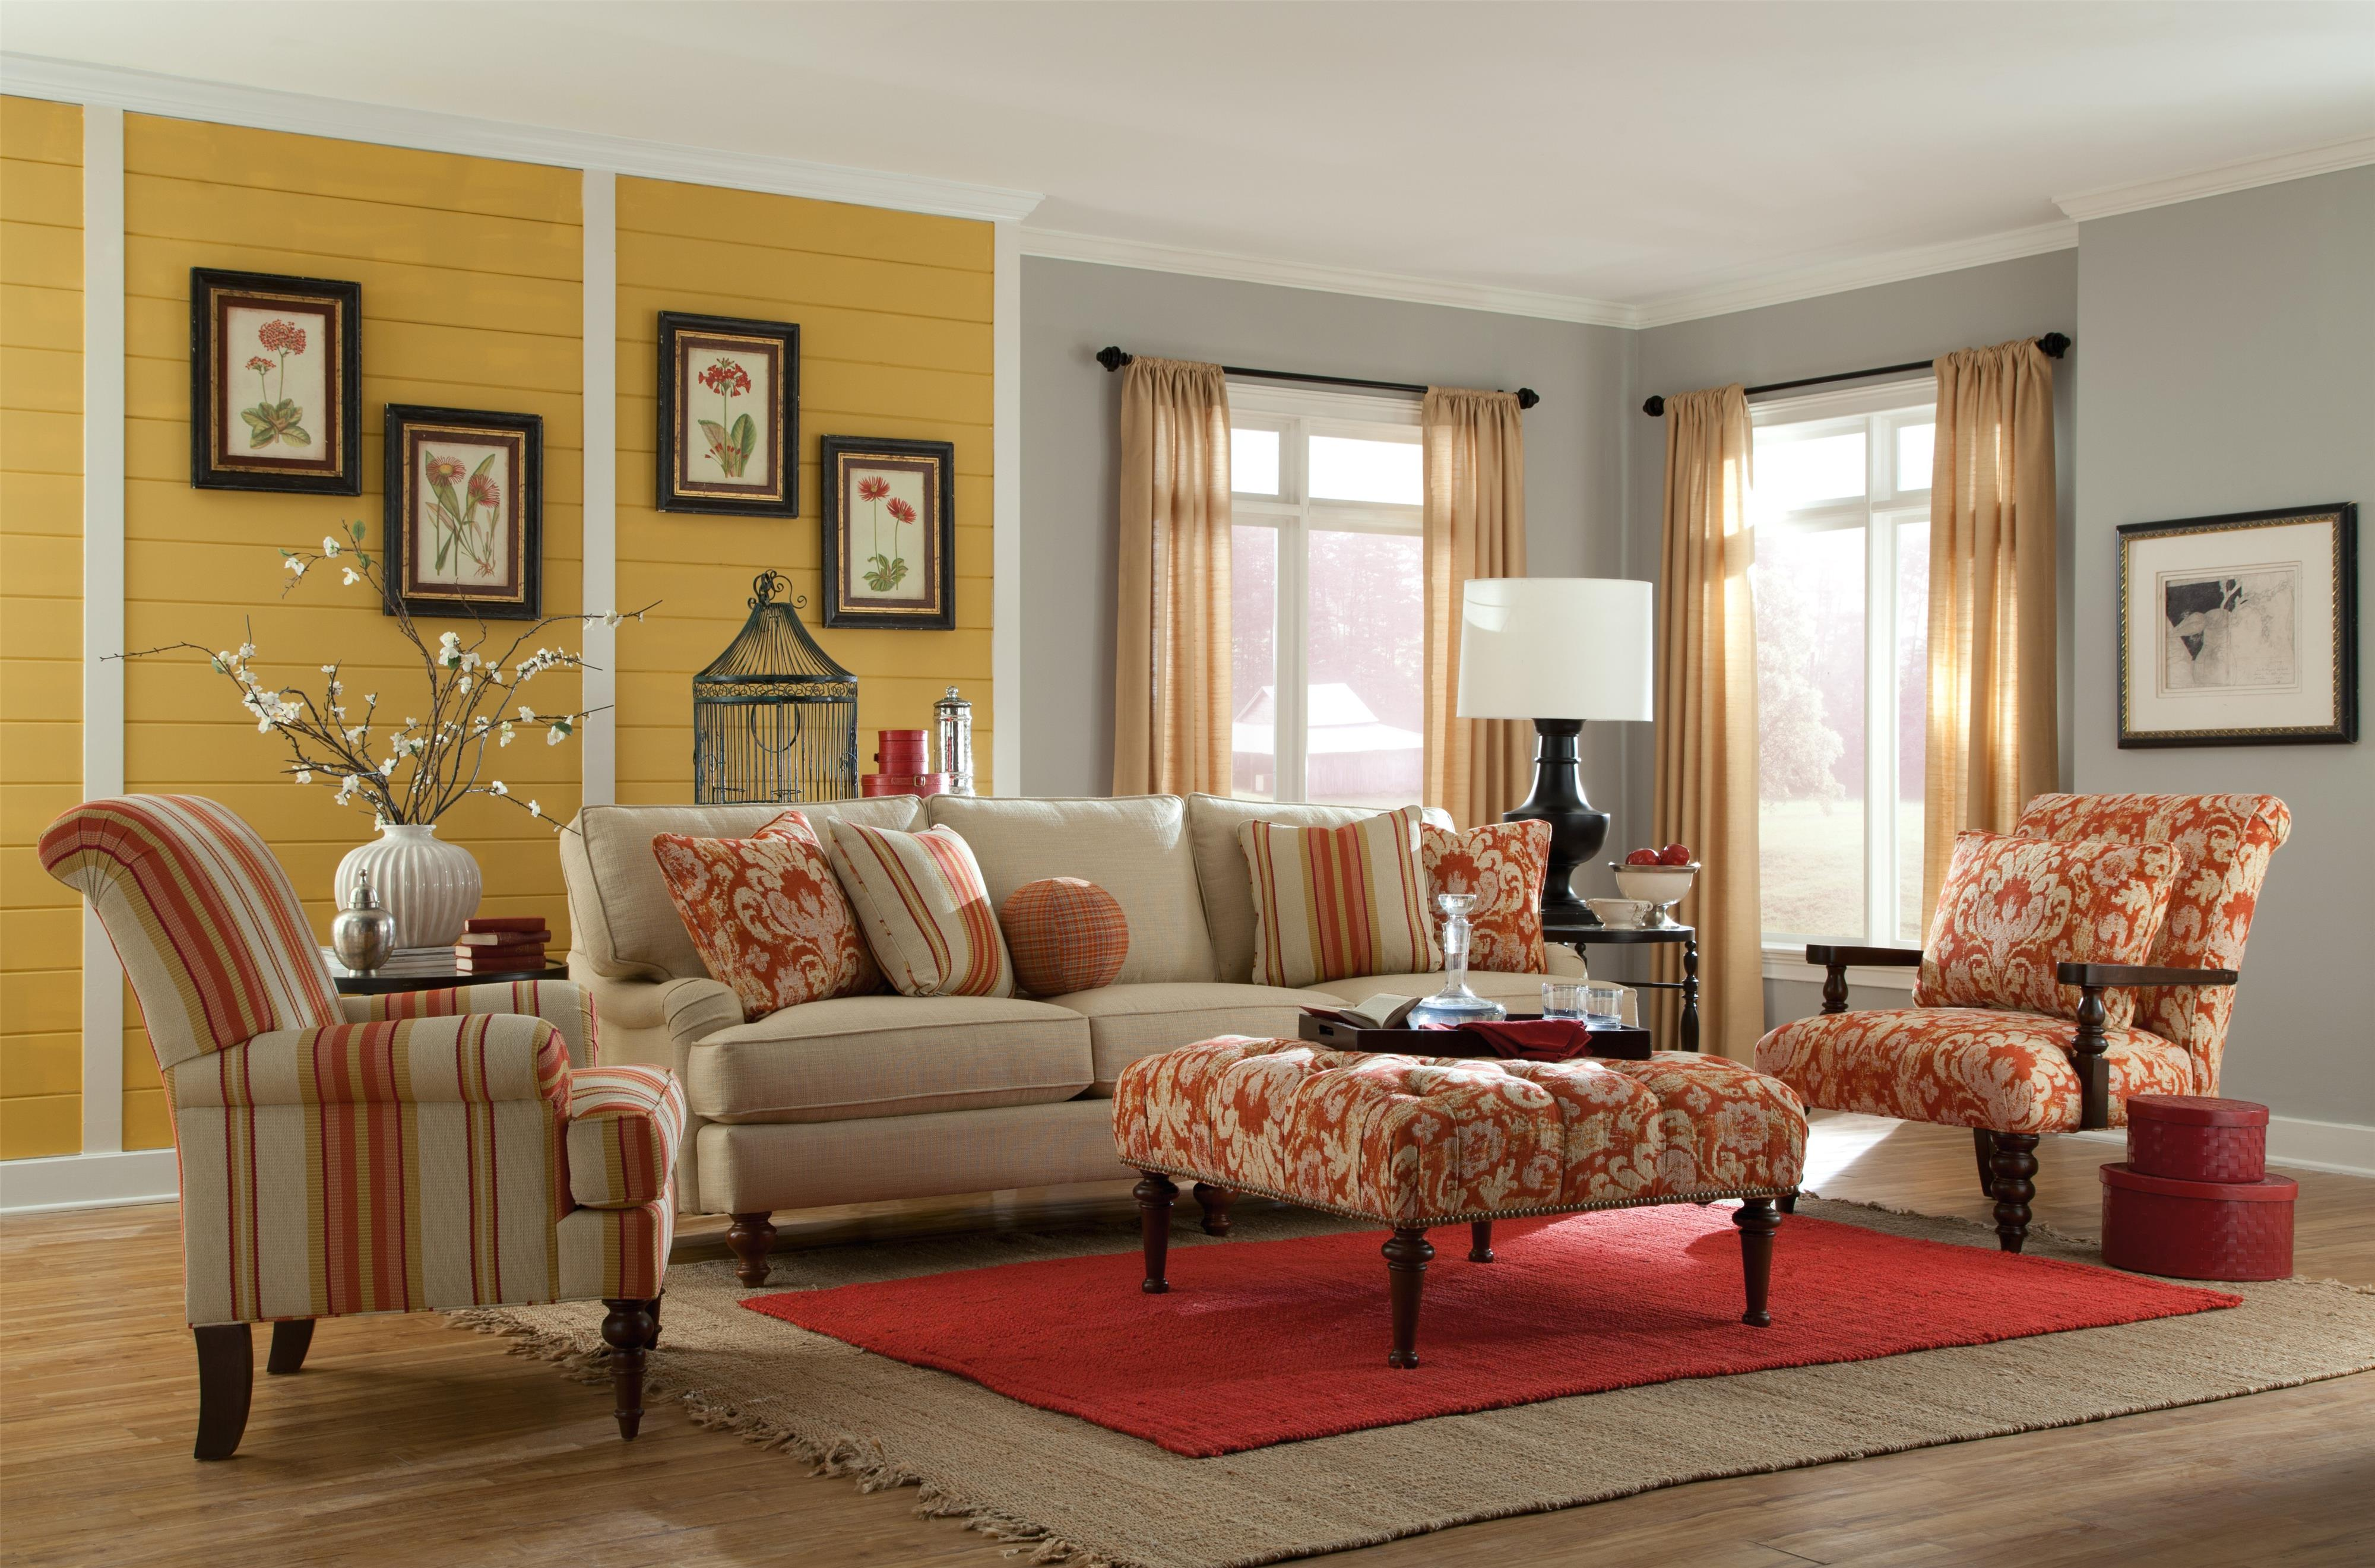 Wonderful Paula Deen By Craftmaster P734300 Sofa With Chaise Lounge And English Arms  | Sprintz Furniture | Sofa Nashville, Franklin, And Greater Tennessee